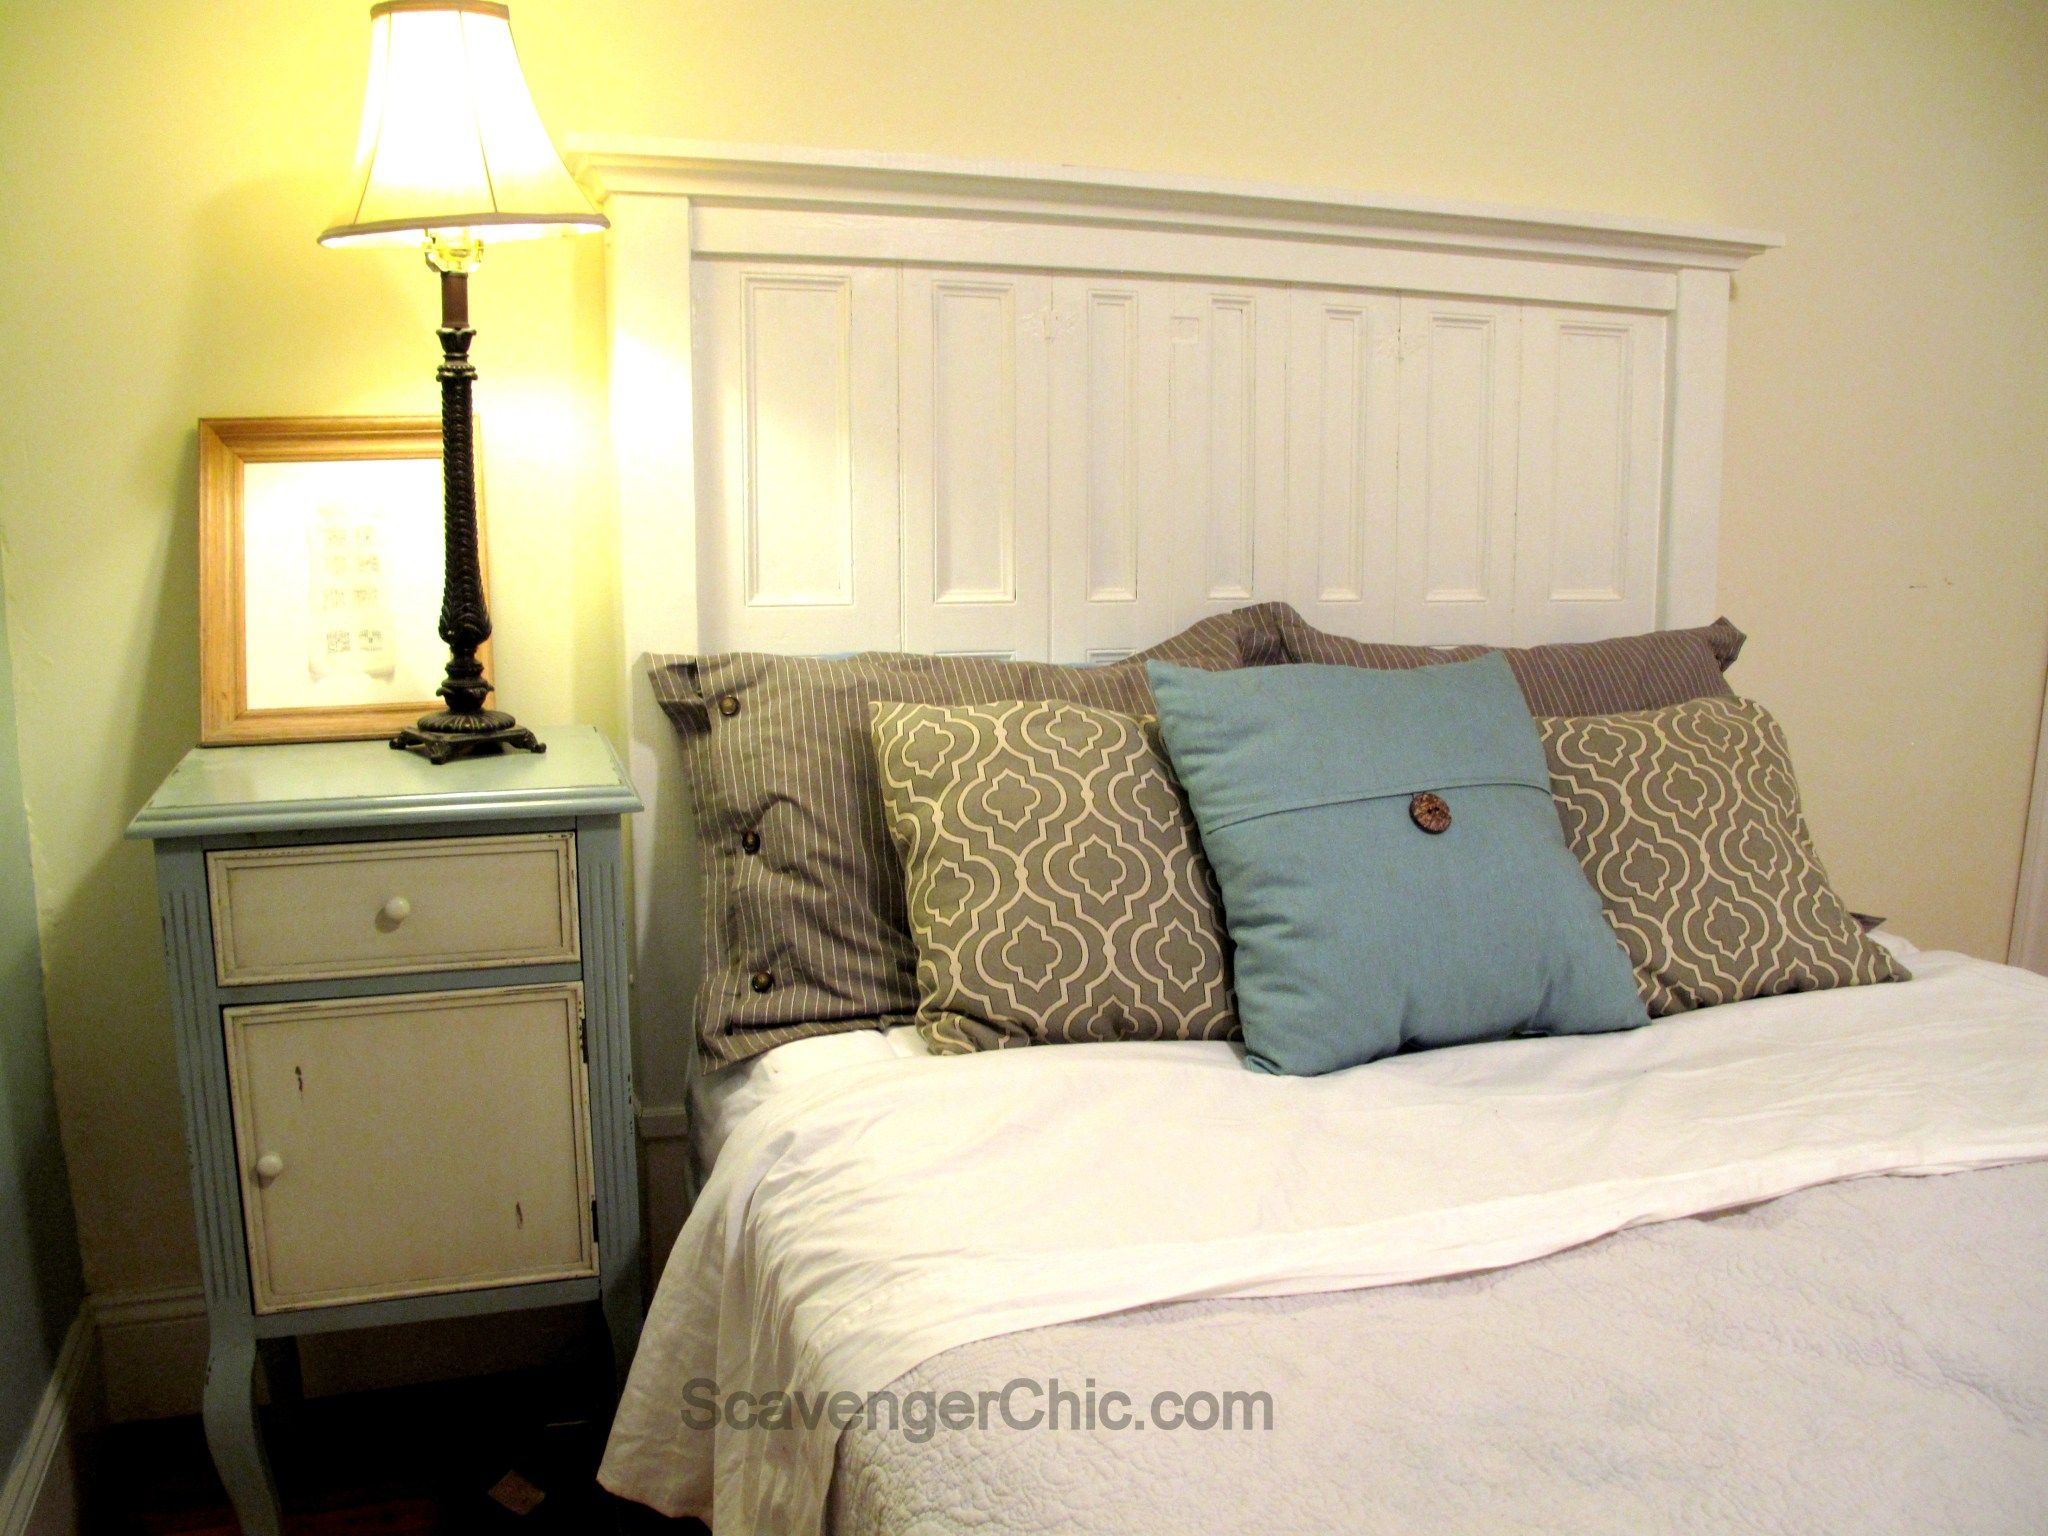 Headboard created from old shutters, upcycle, recycle-001